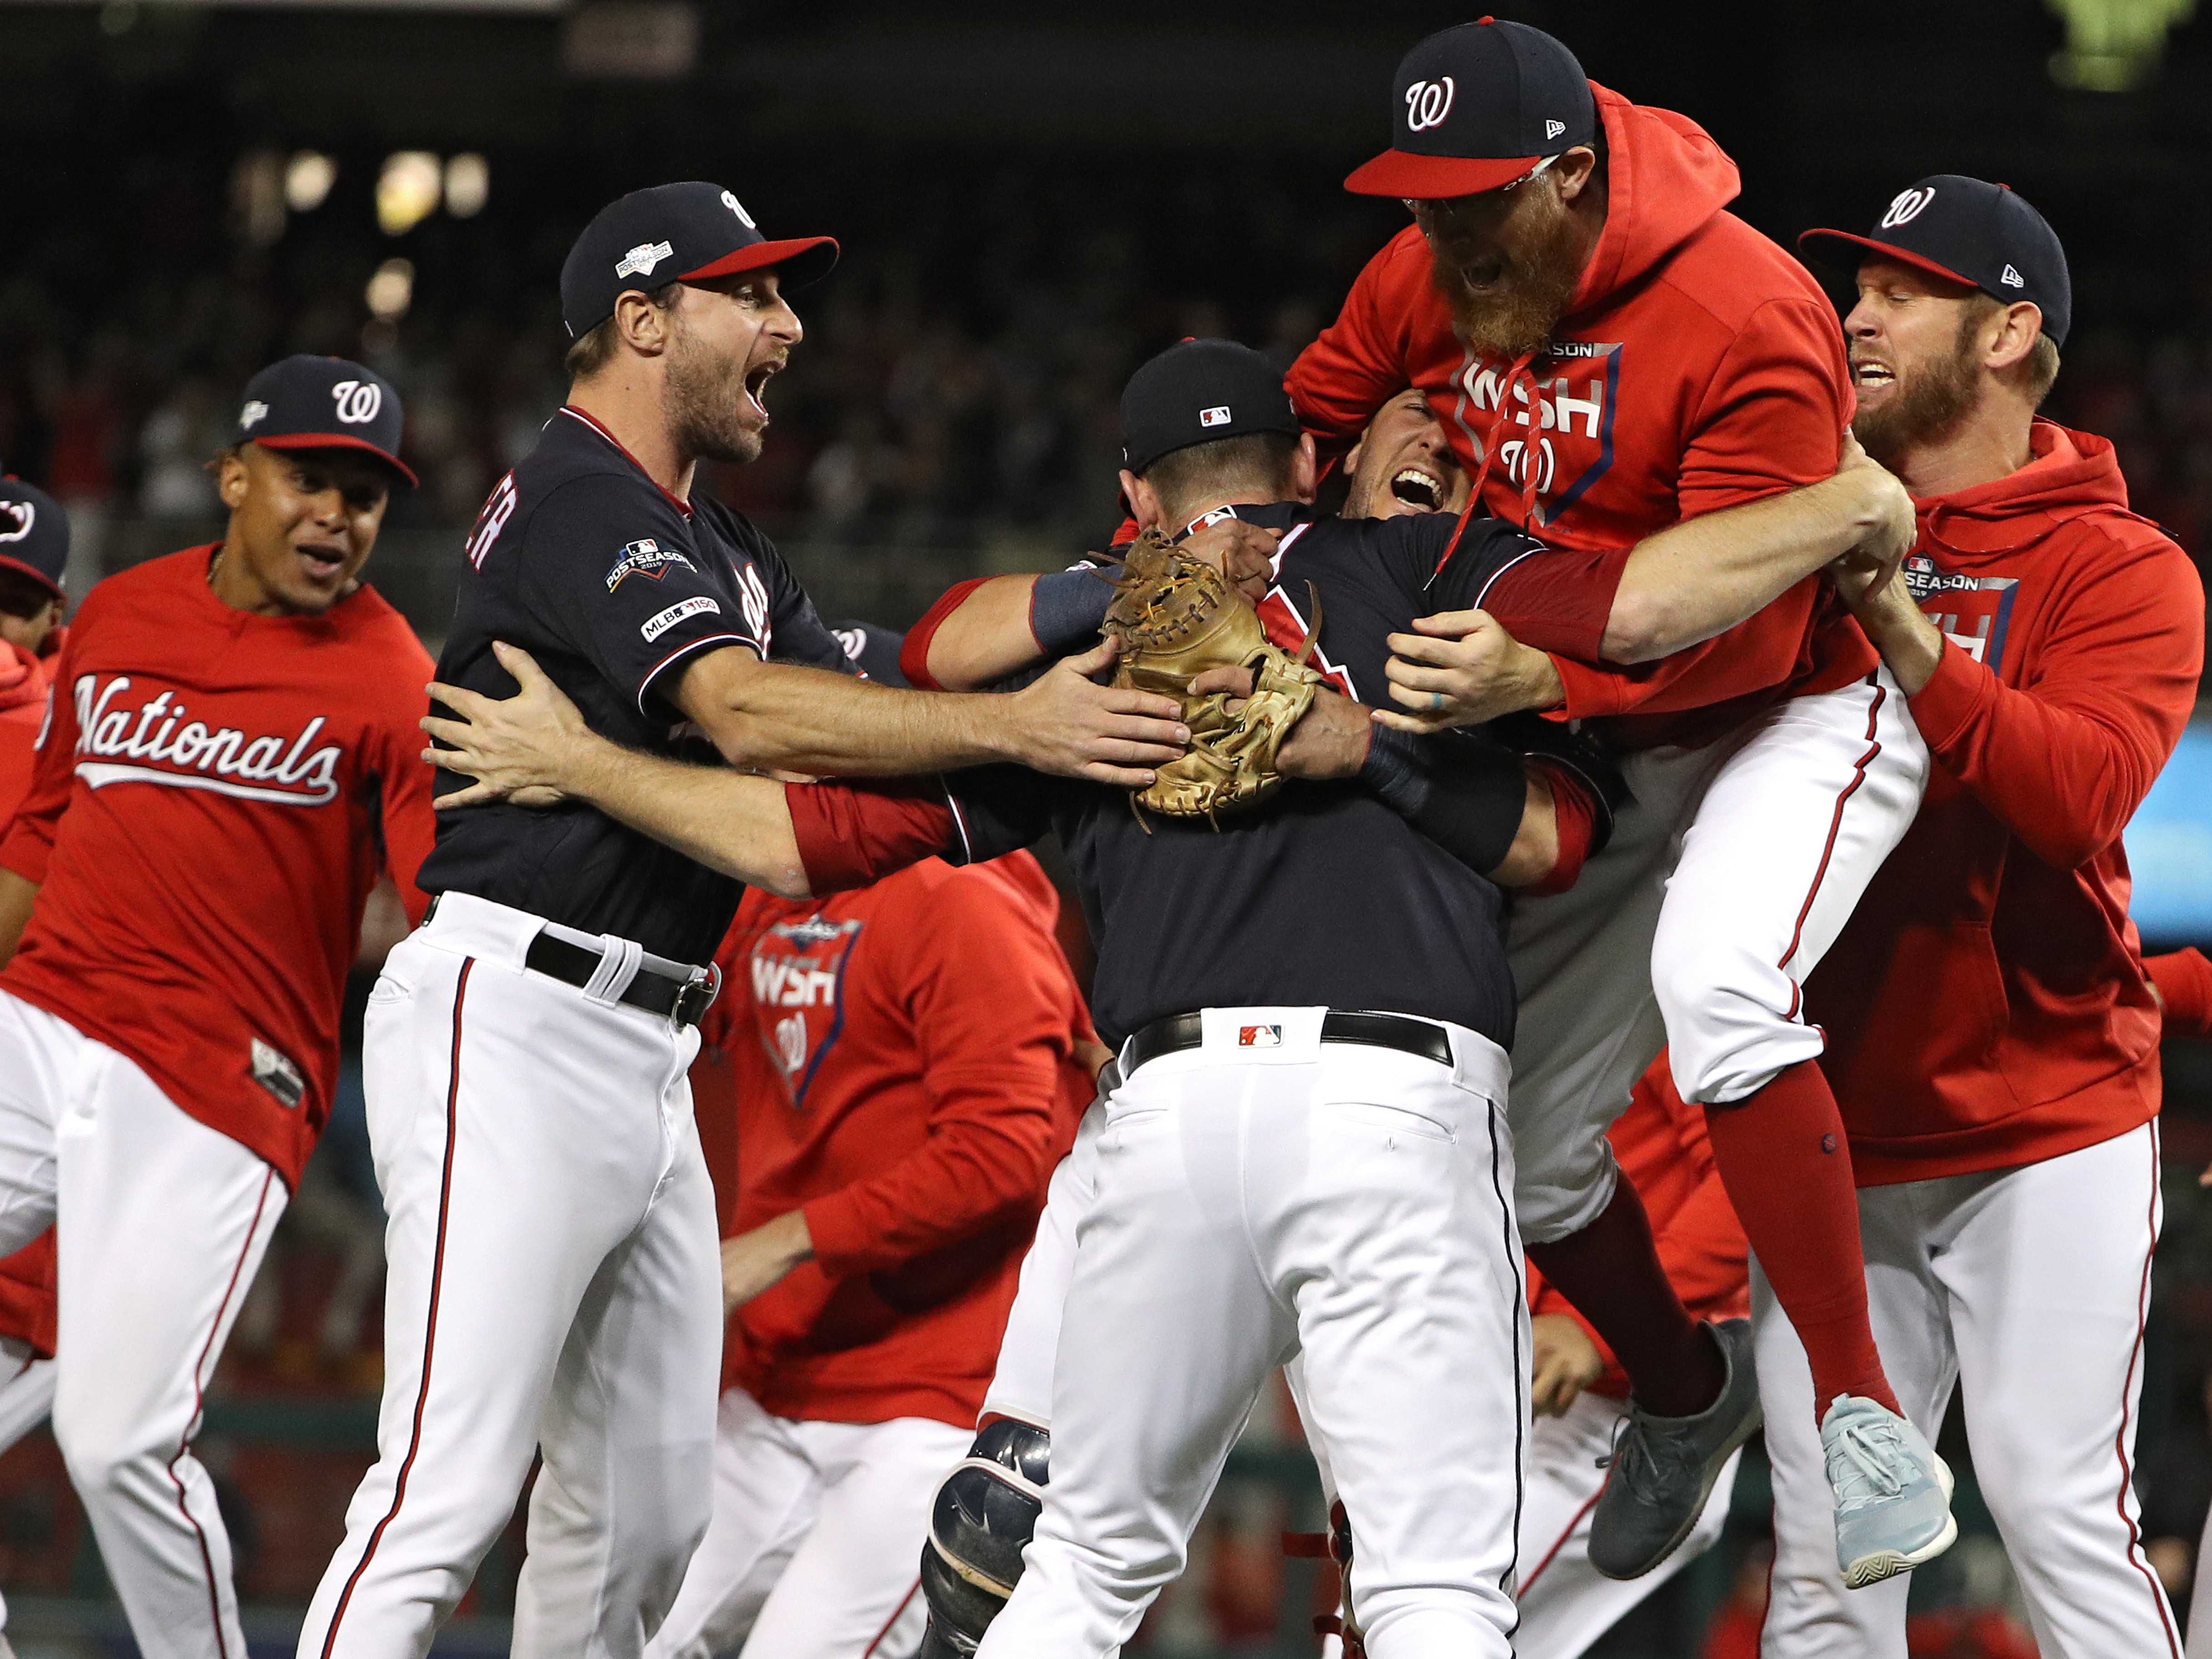 Opinion: For Washington's Nats, A Long And Winding Road To The World Series